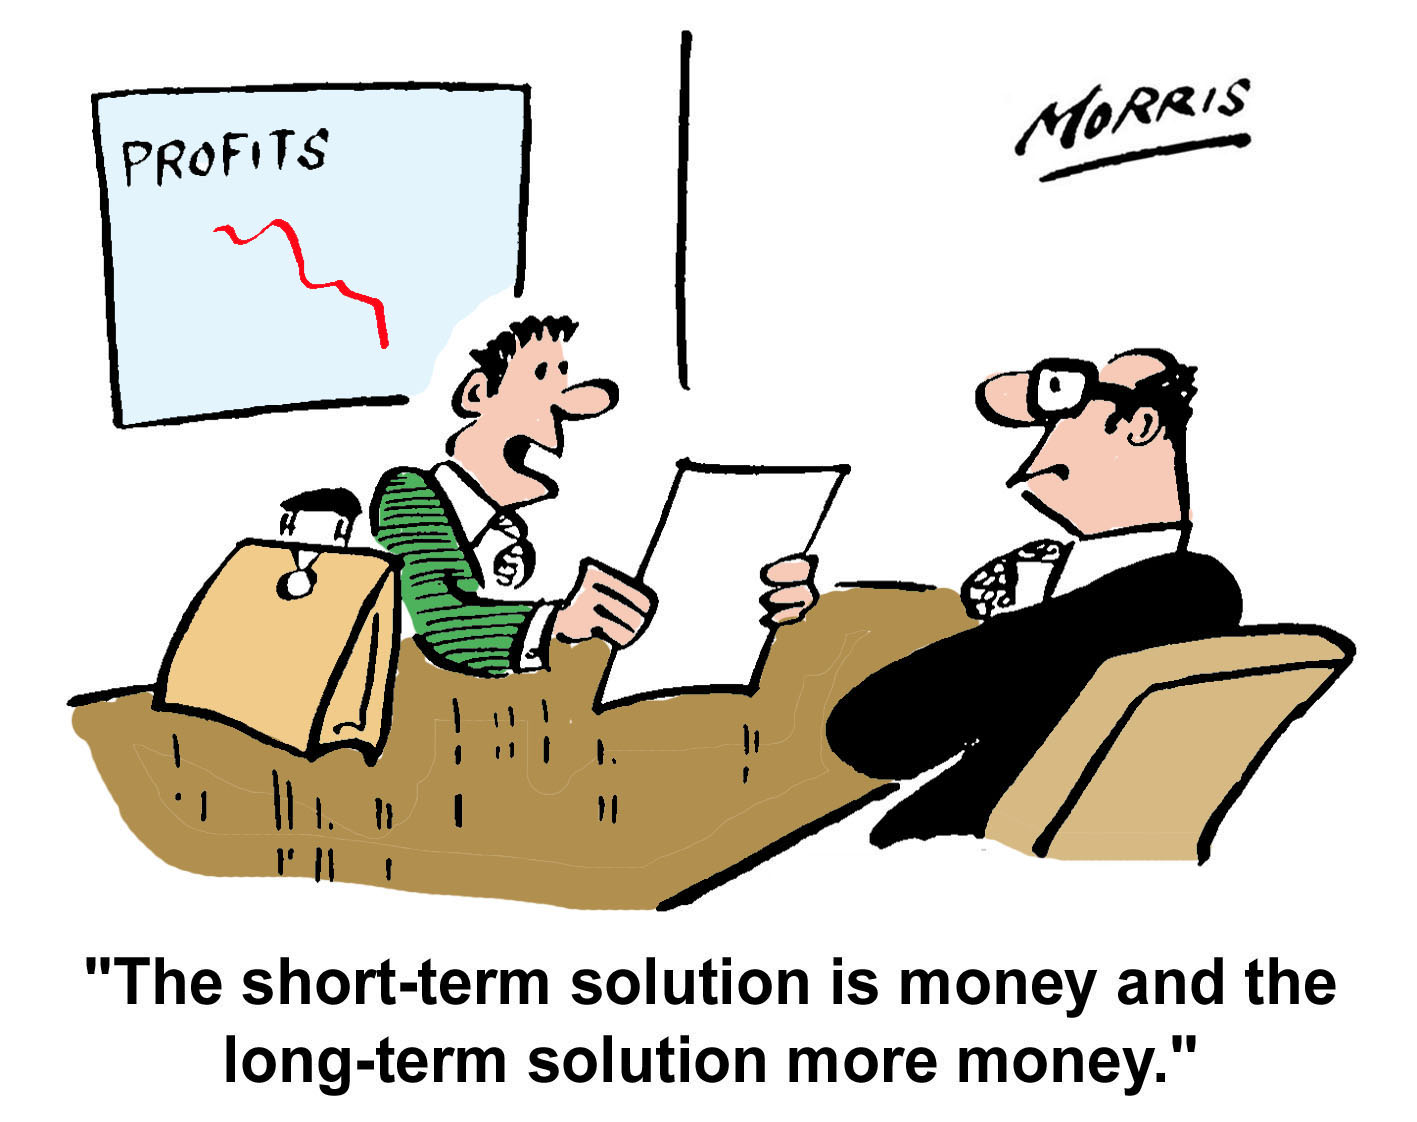 accountant accountancy profits business cartoons